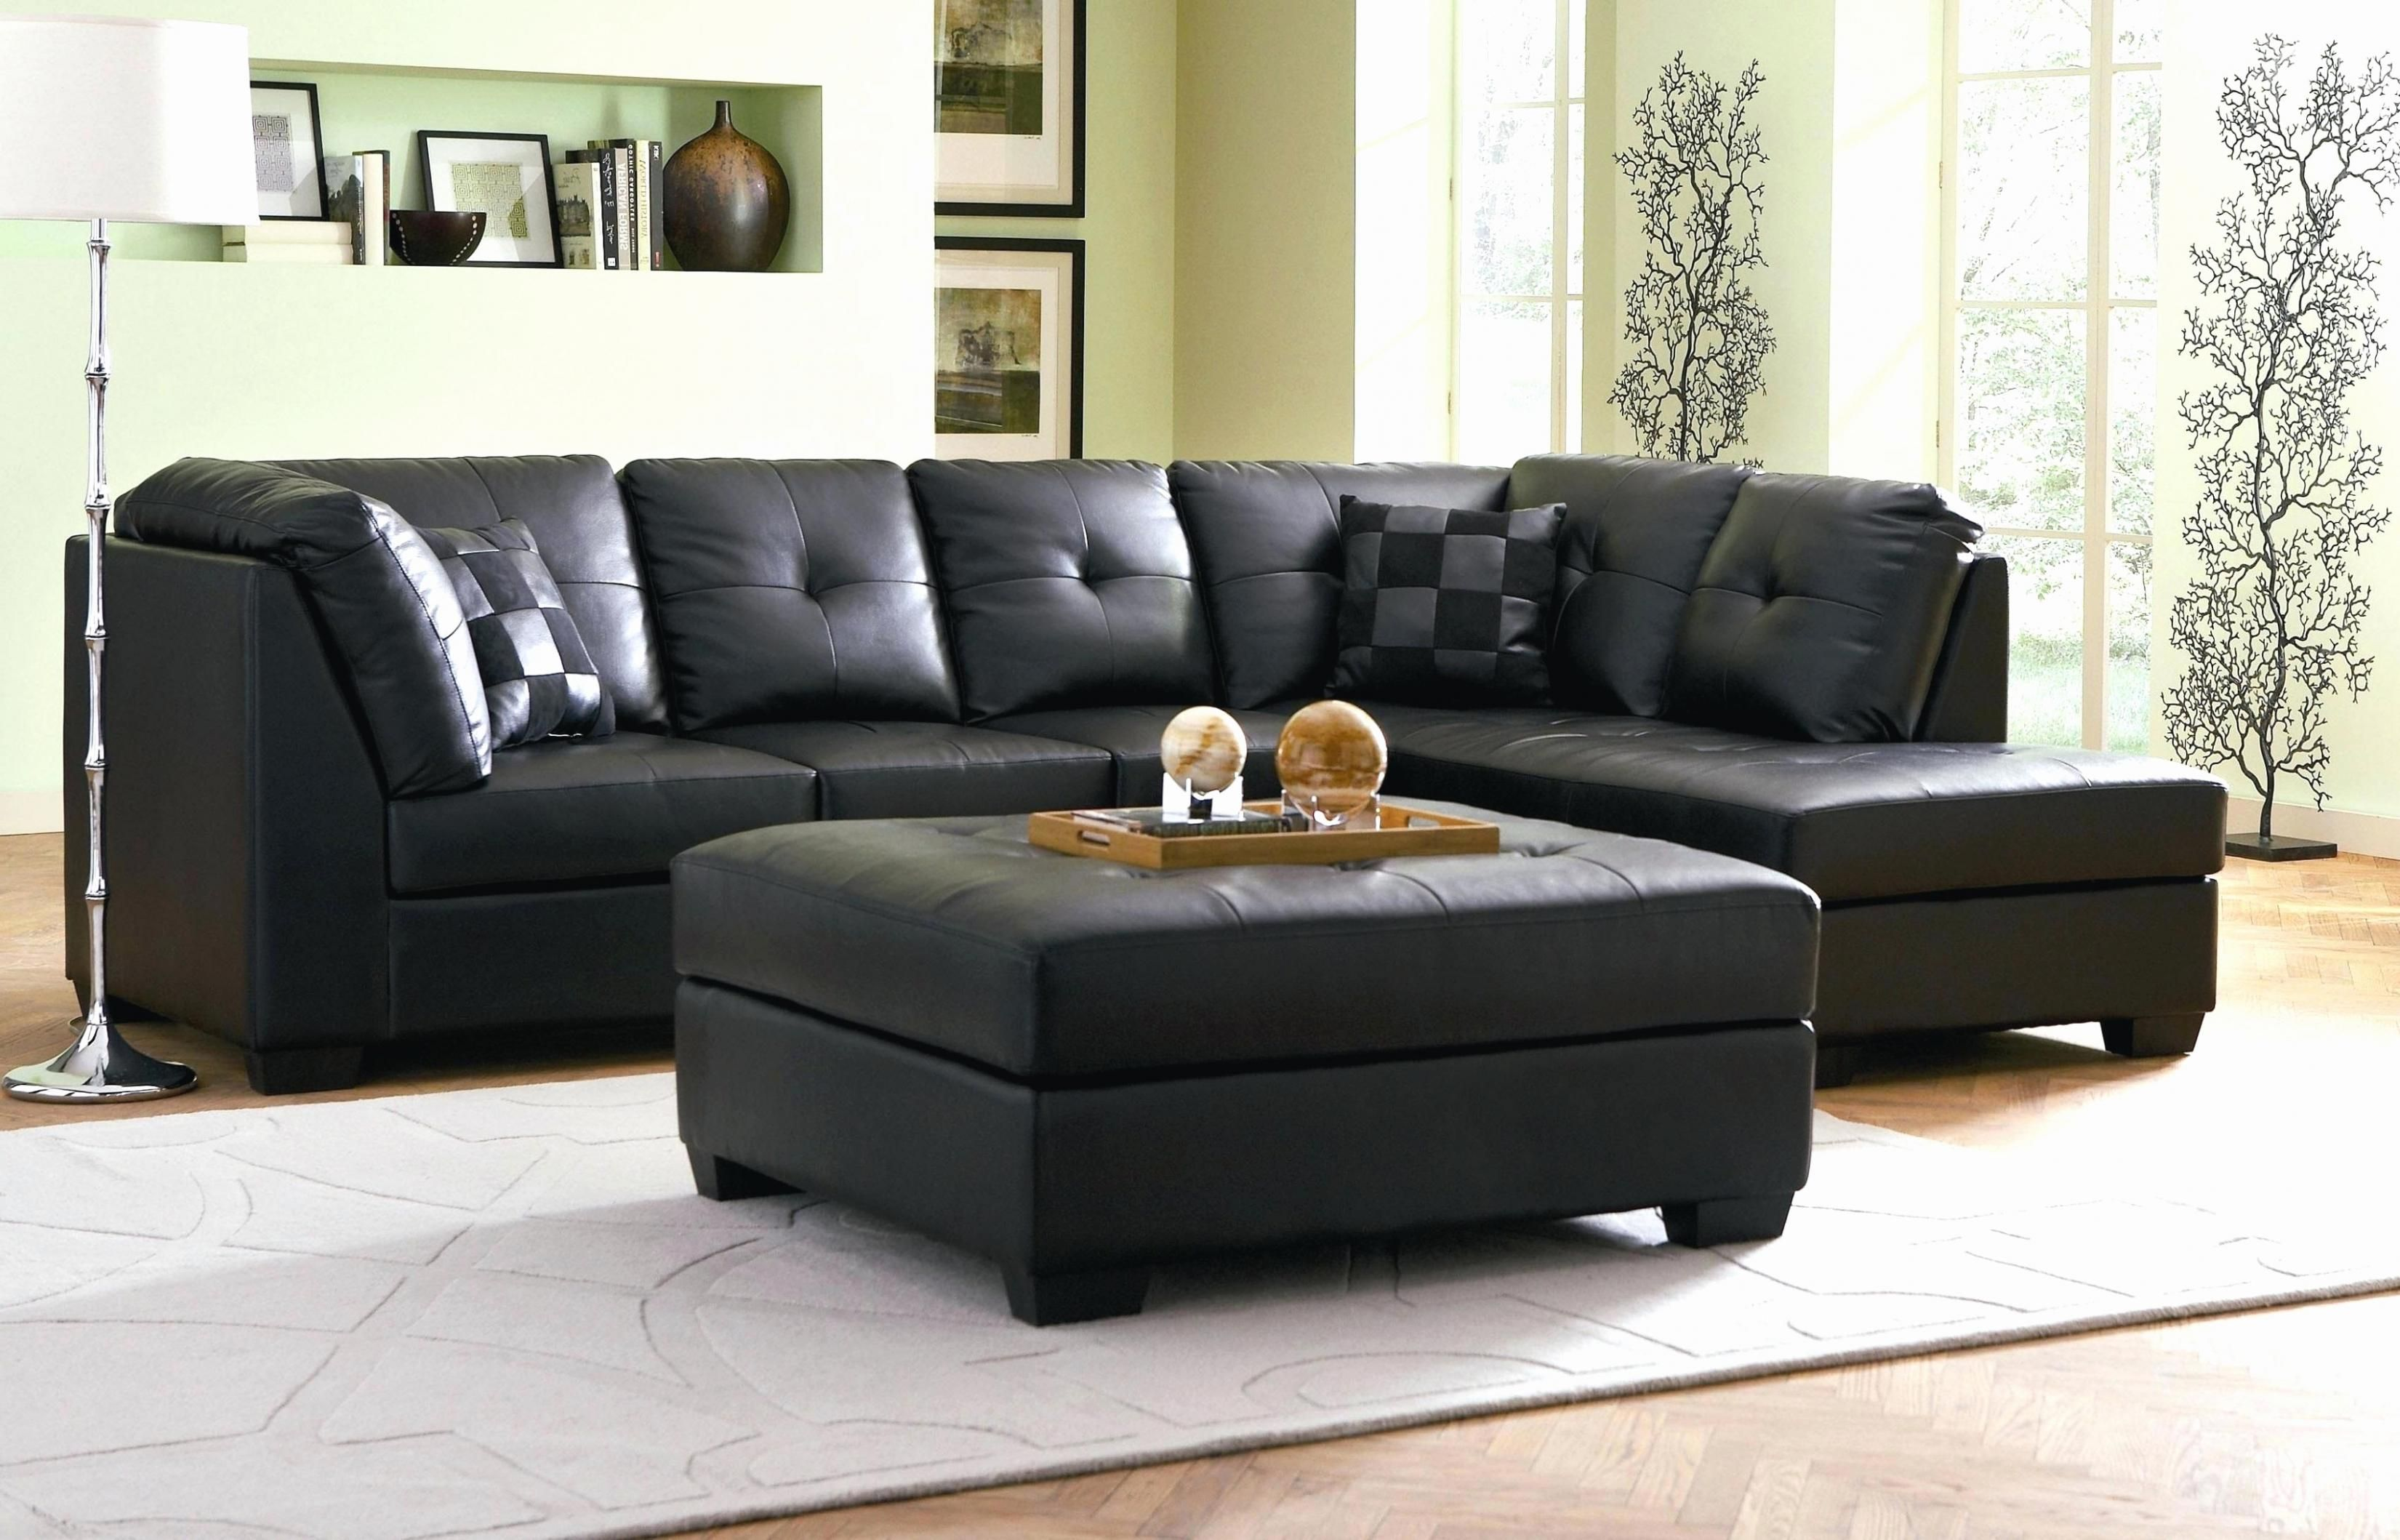 Fine Sectional Couch Under 300 Magnificent Sectional Couch Under 300 45 In Modern Sofa Inspiratio Black Leather Sofa Living Room Sofa Design Cushions On Sofa